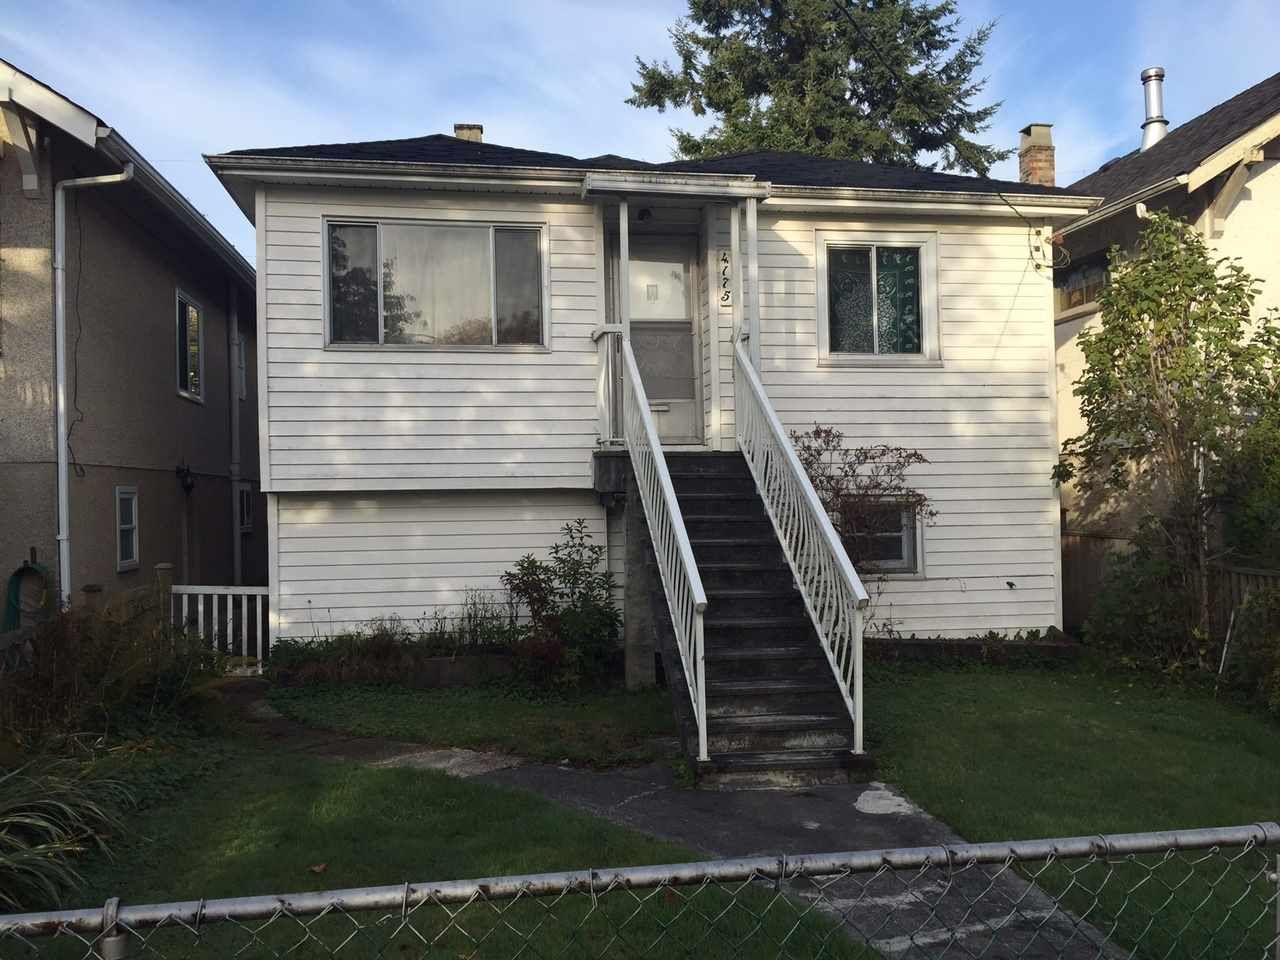 Main Photo: 4175 ST. GEORGE Street in Vancouver: Fraser VE House for sale (Vancouver East)  : MLS®# R2019484